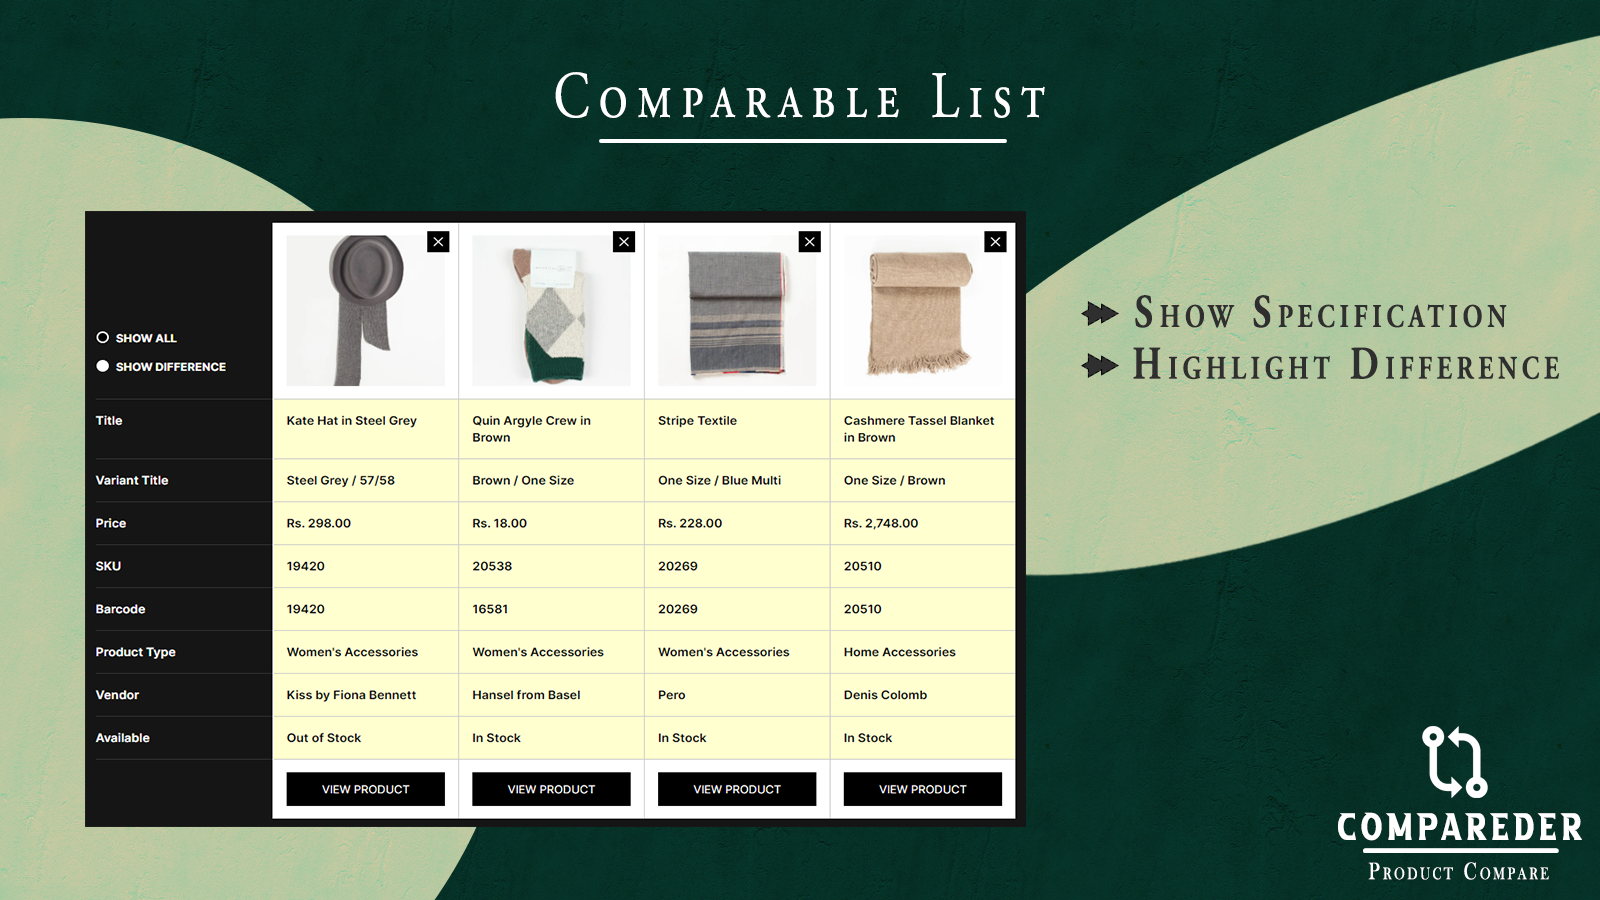 Comparable List